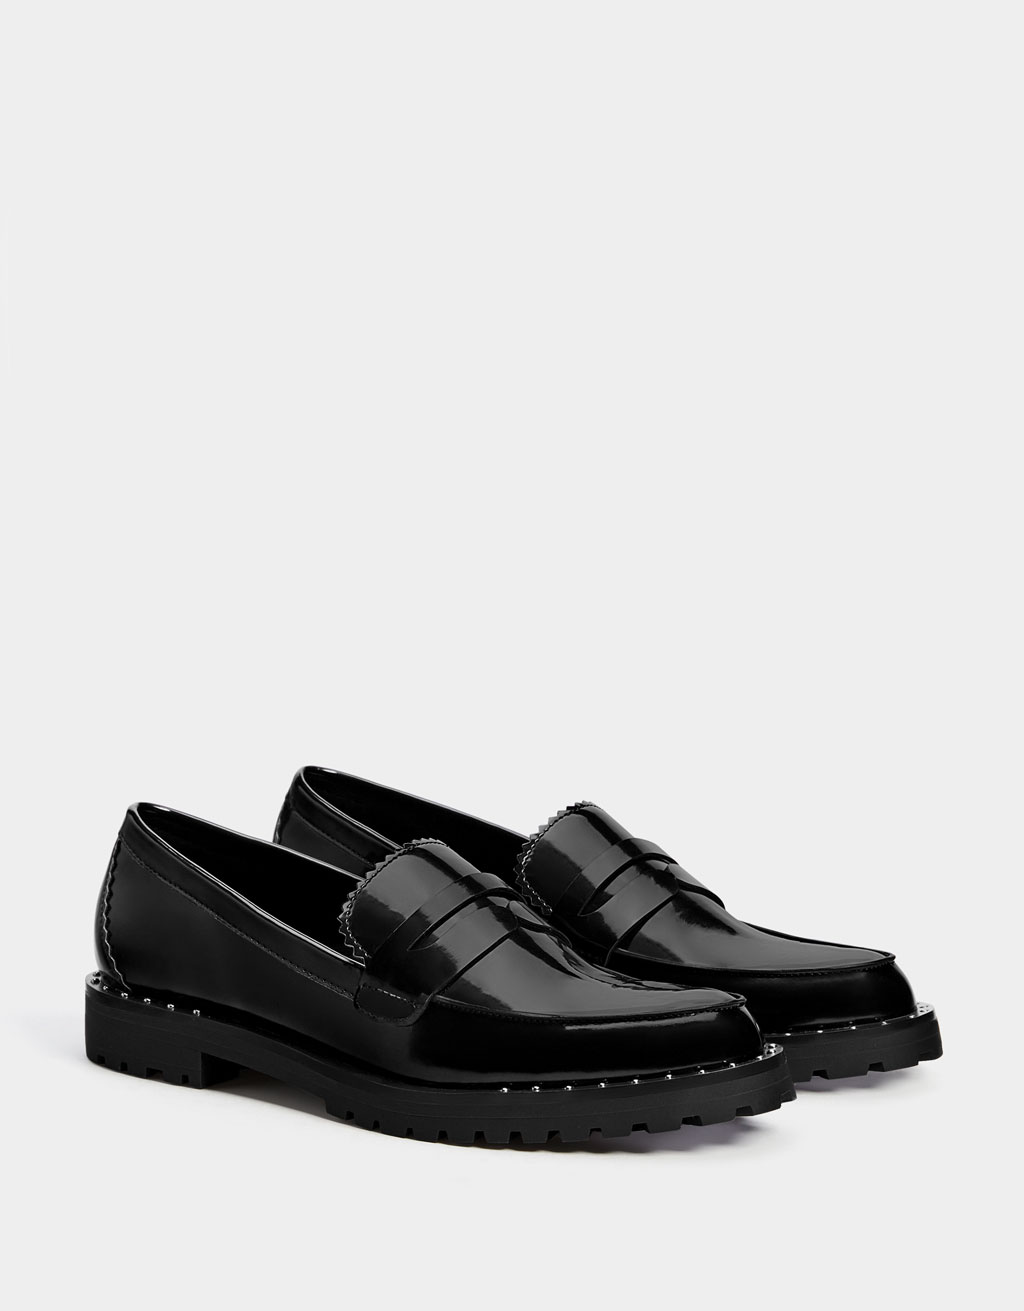 Black faux patent leather penny loafers with studs